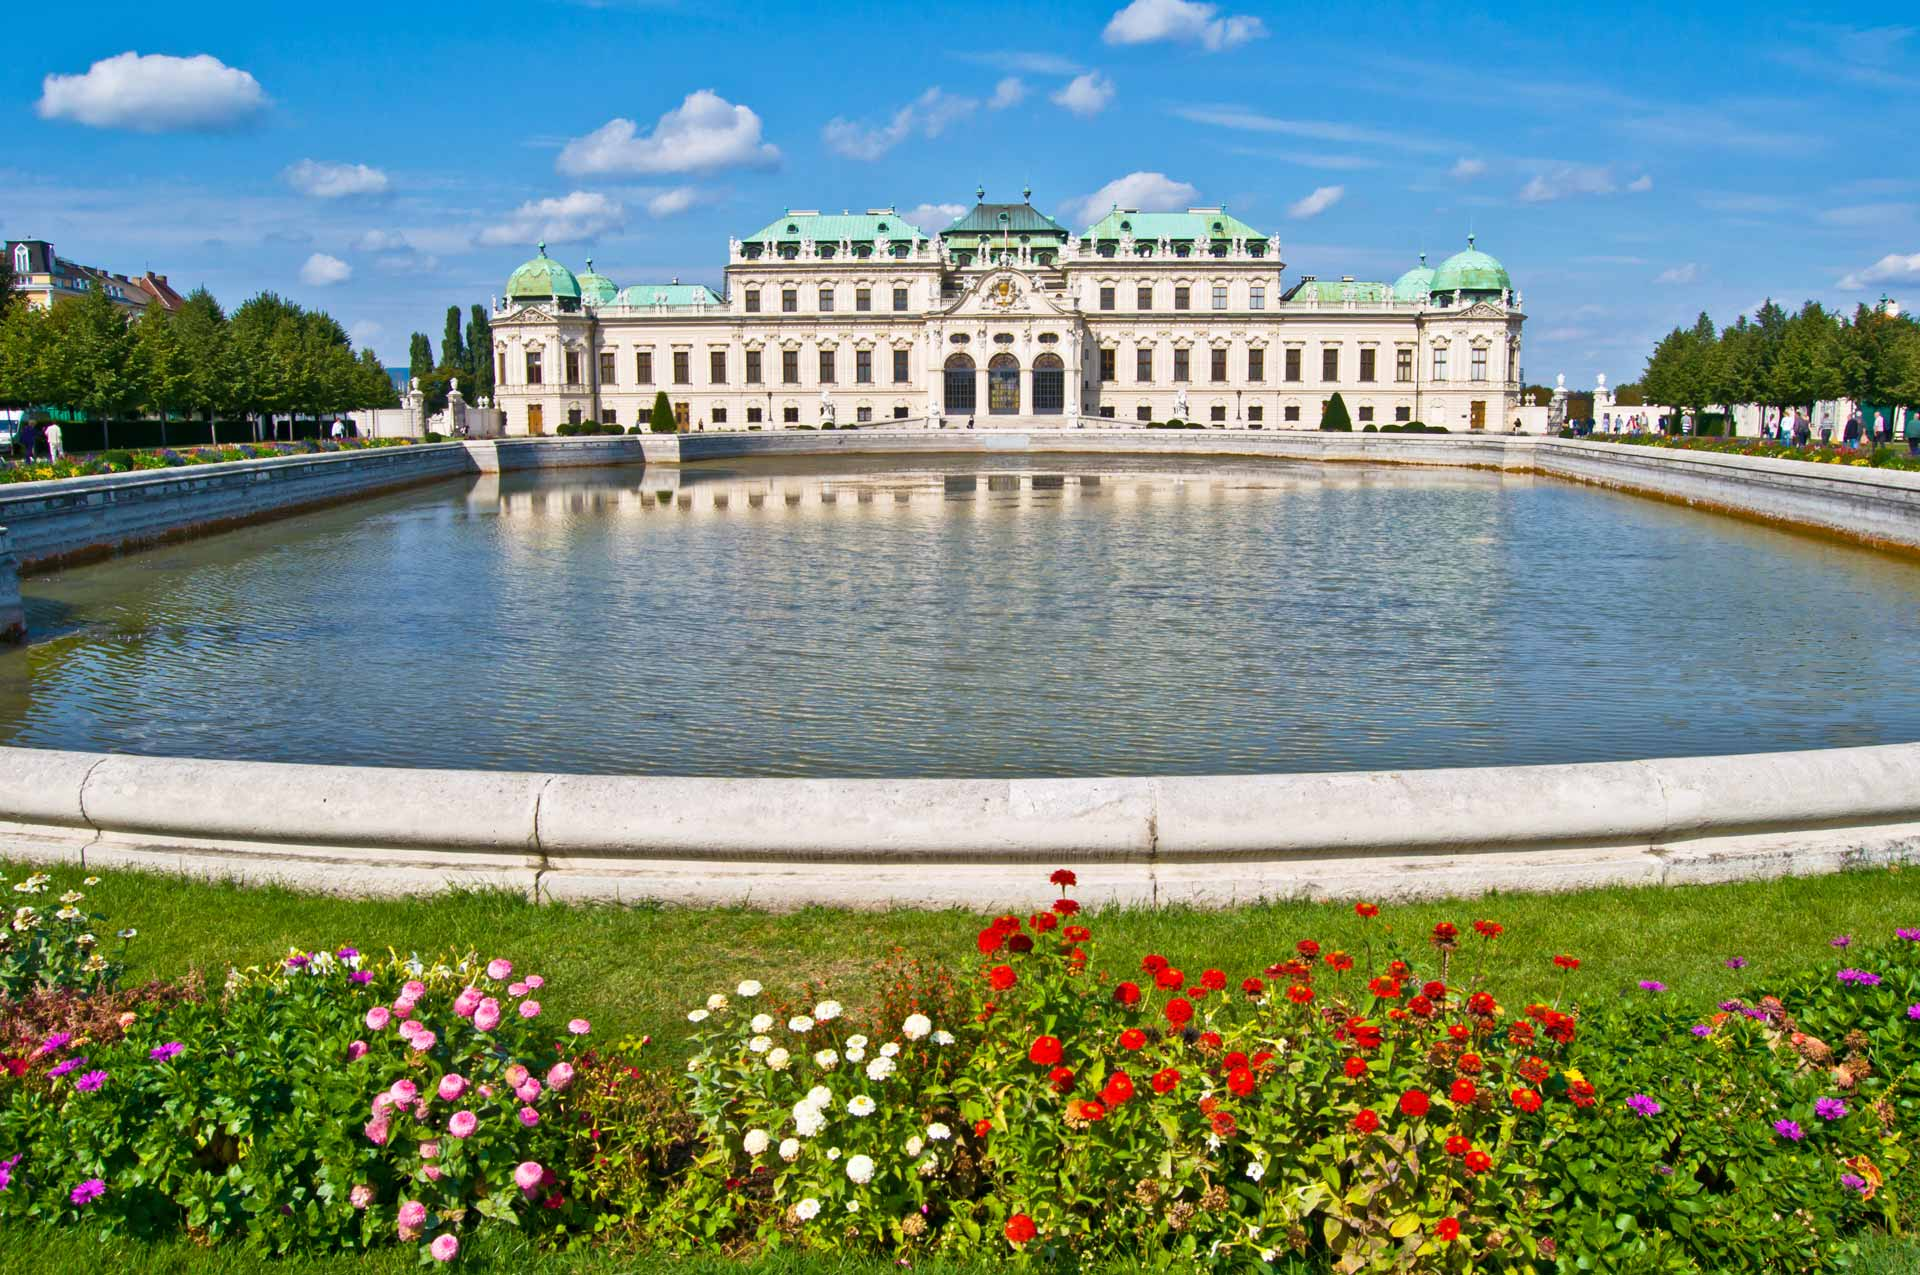 old palace and garden Belvedere in Vienna